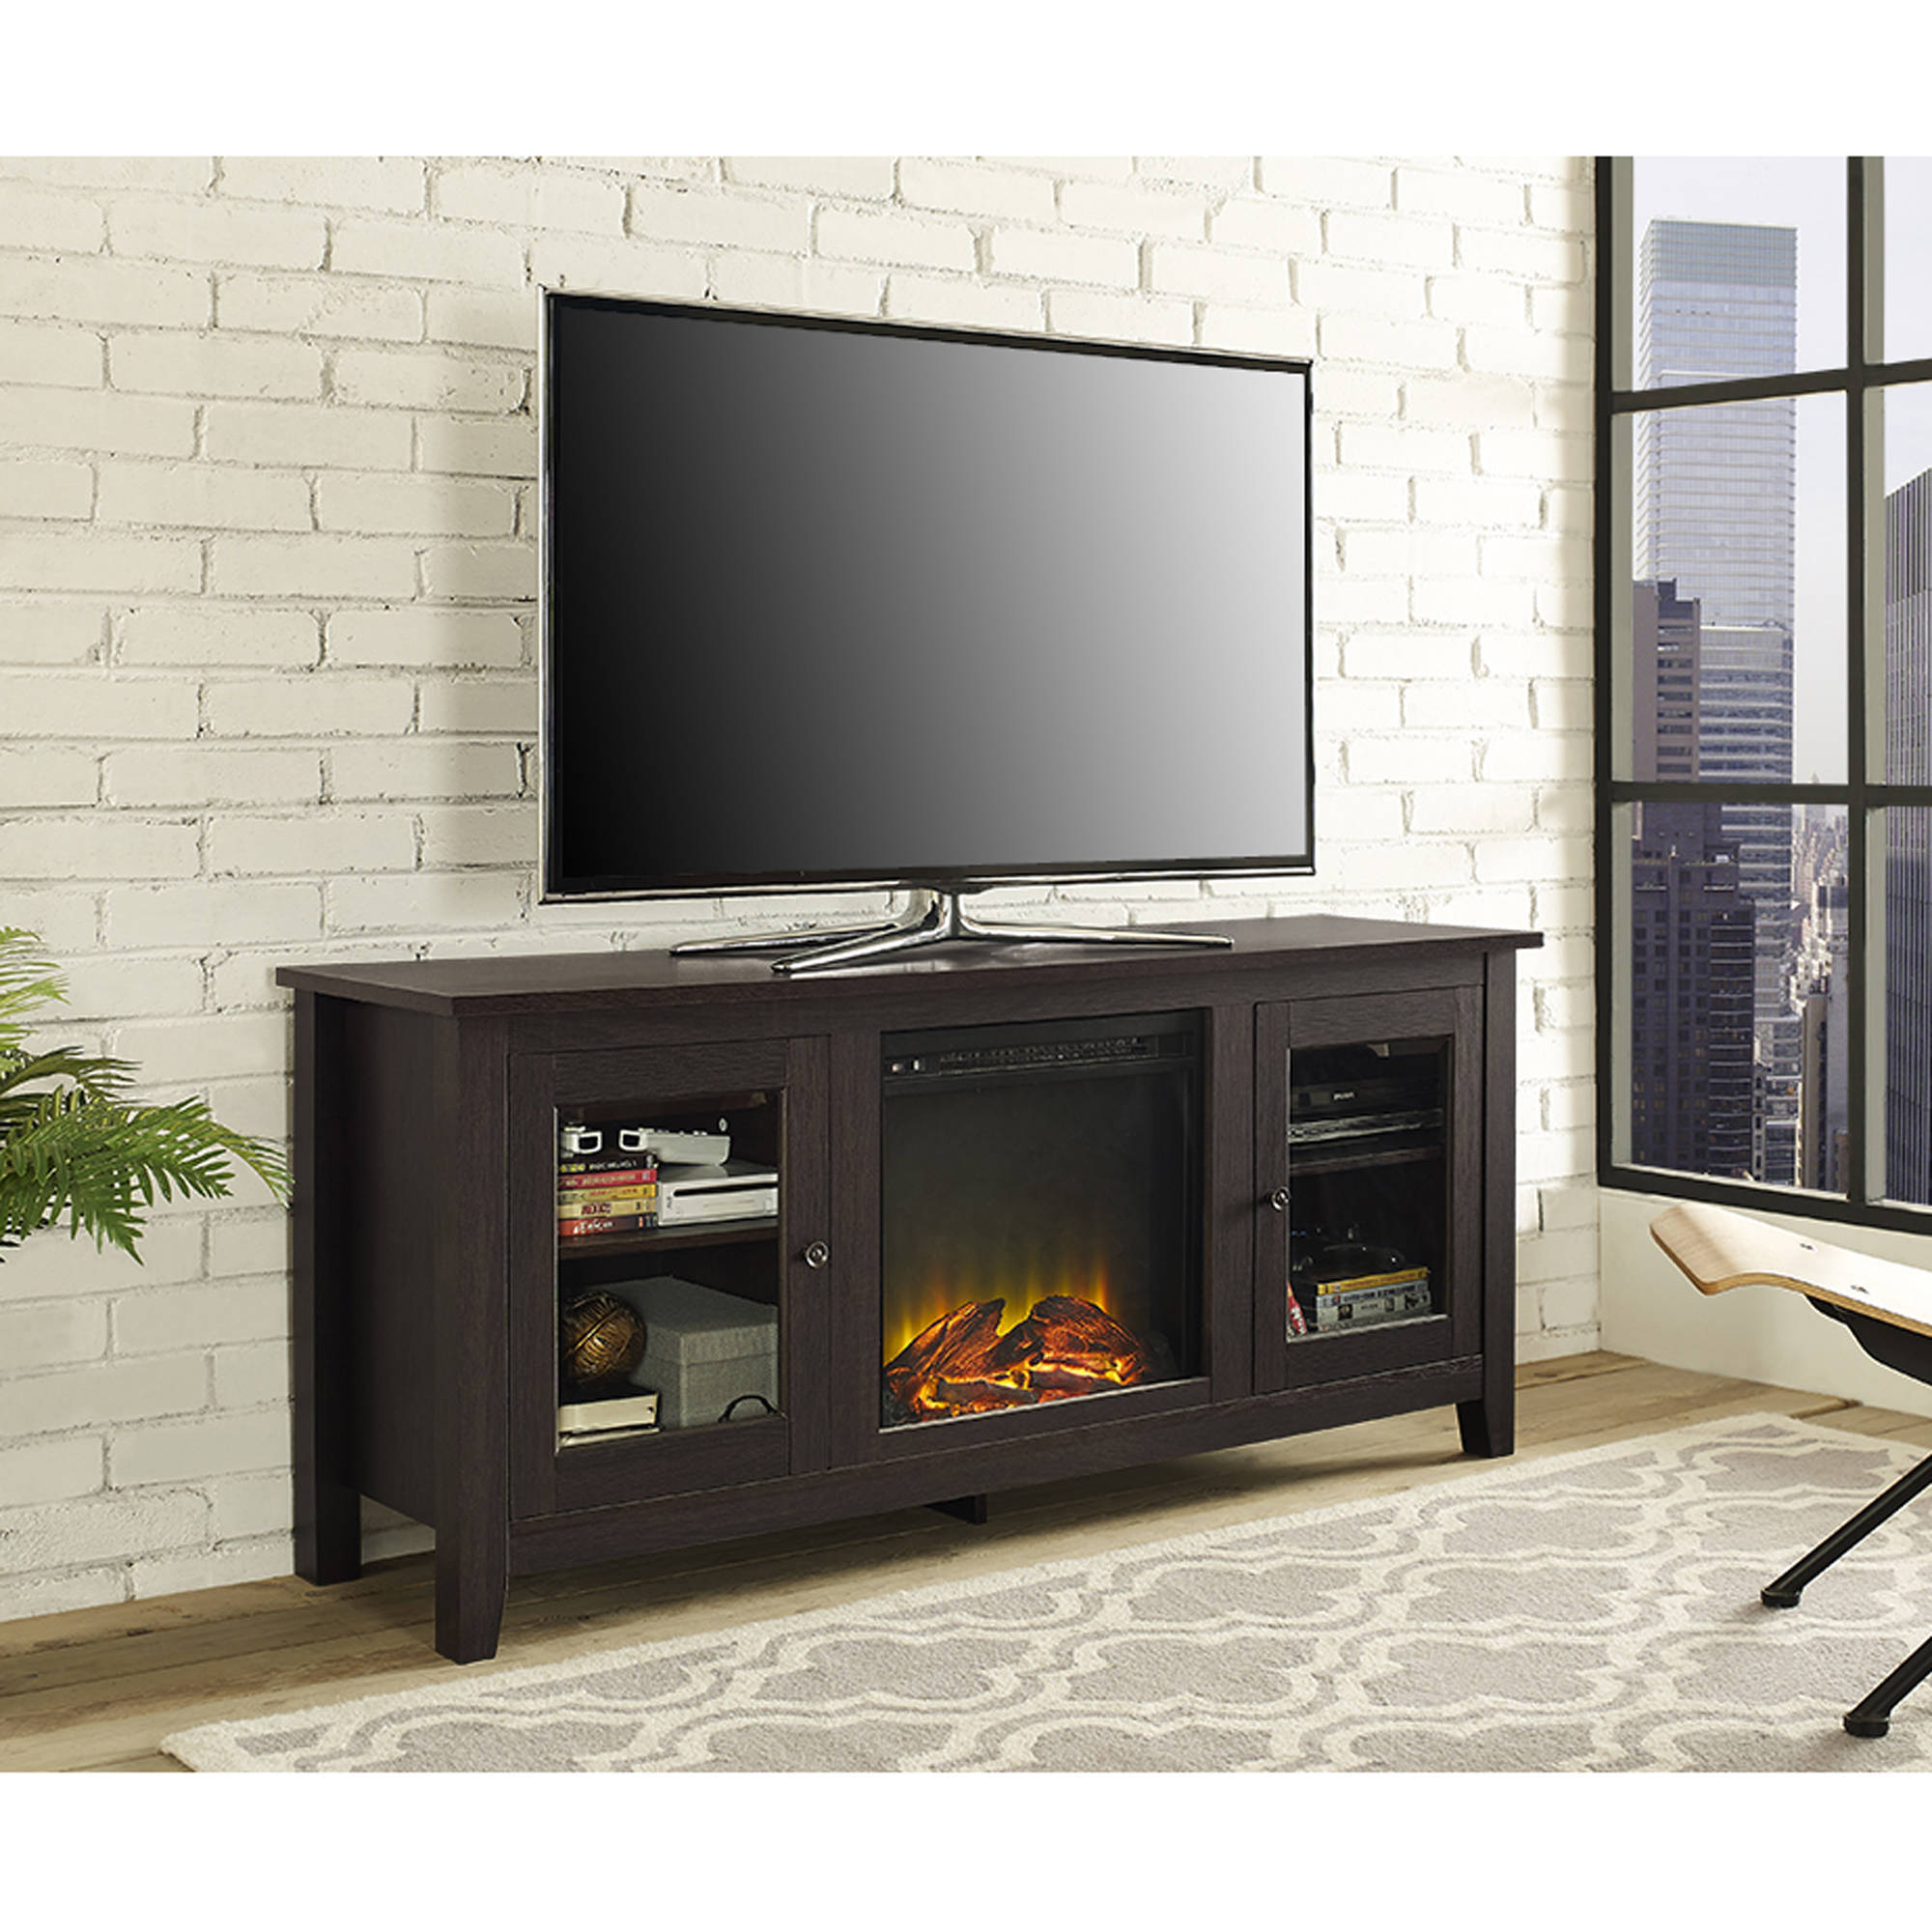 Popular Tv Stands & Entertainment Centers – Walmart With Wooden Tv Stands And Cabinets (View 9 of 20)